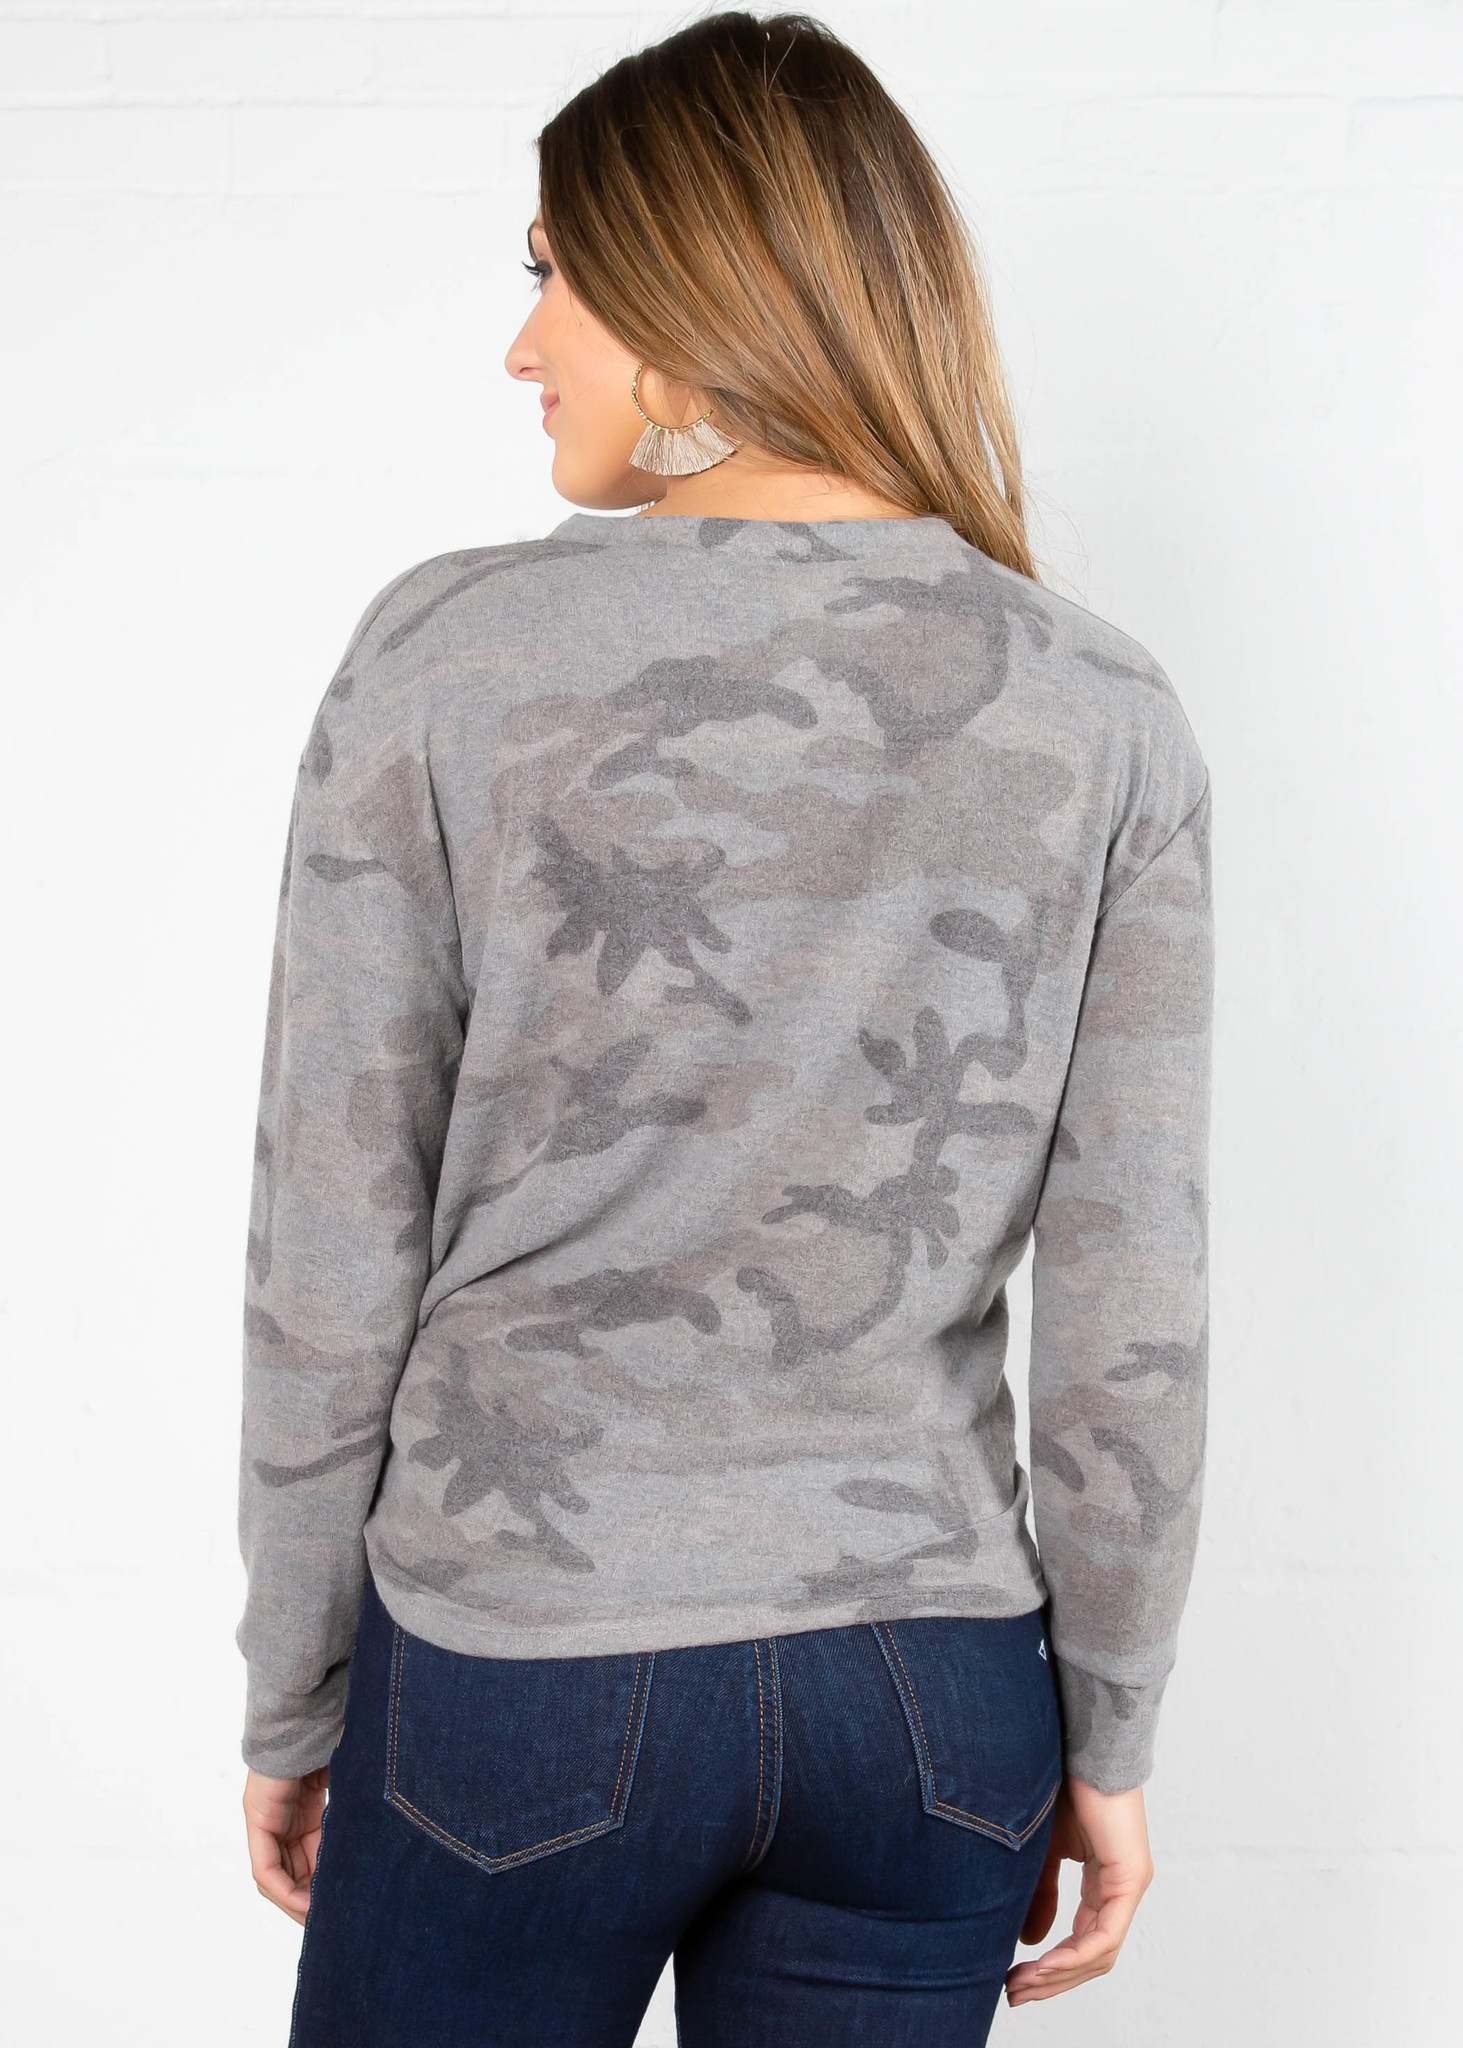 LOVES ME KNOT CAMO PRINT TOP